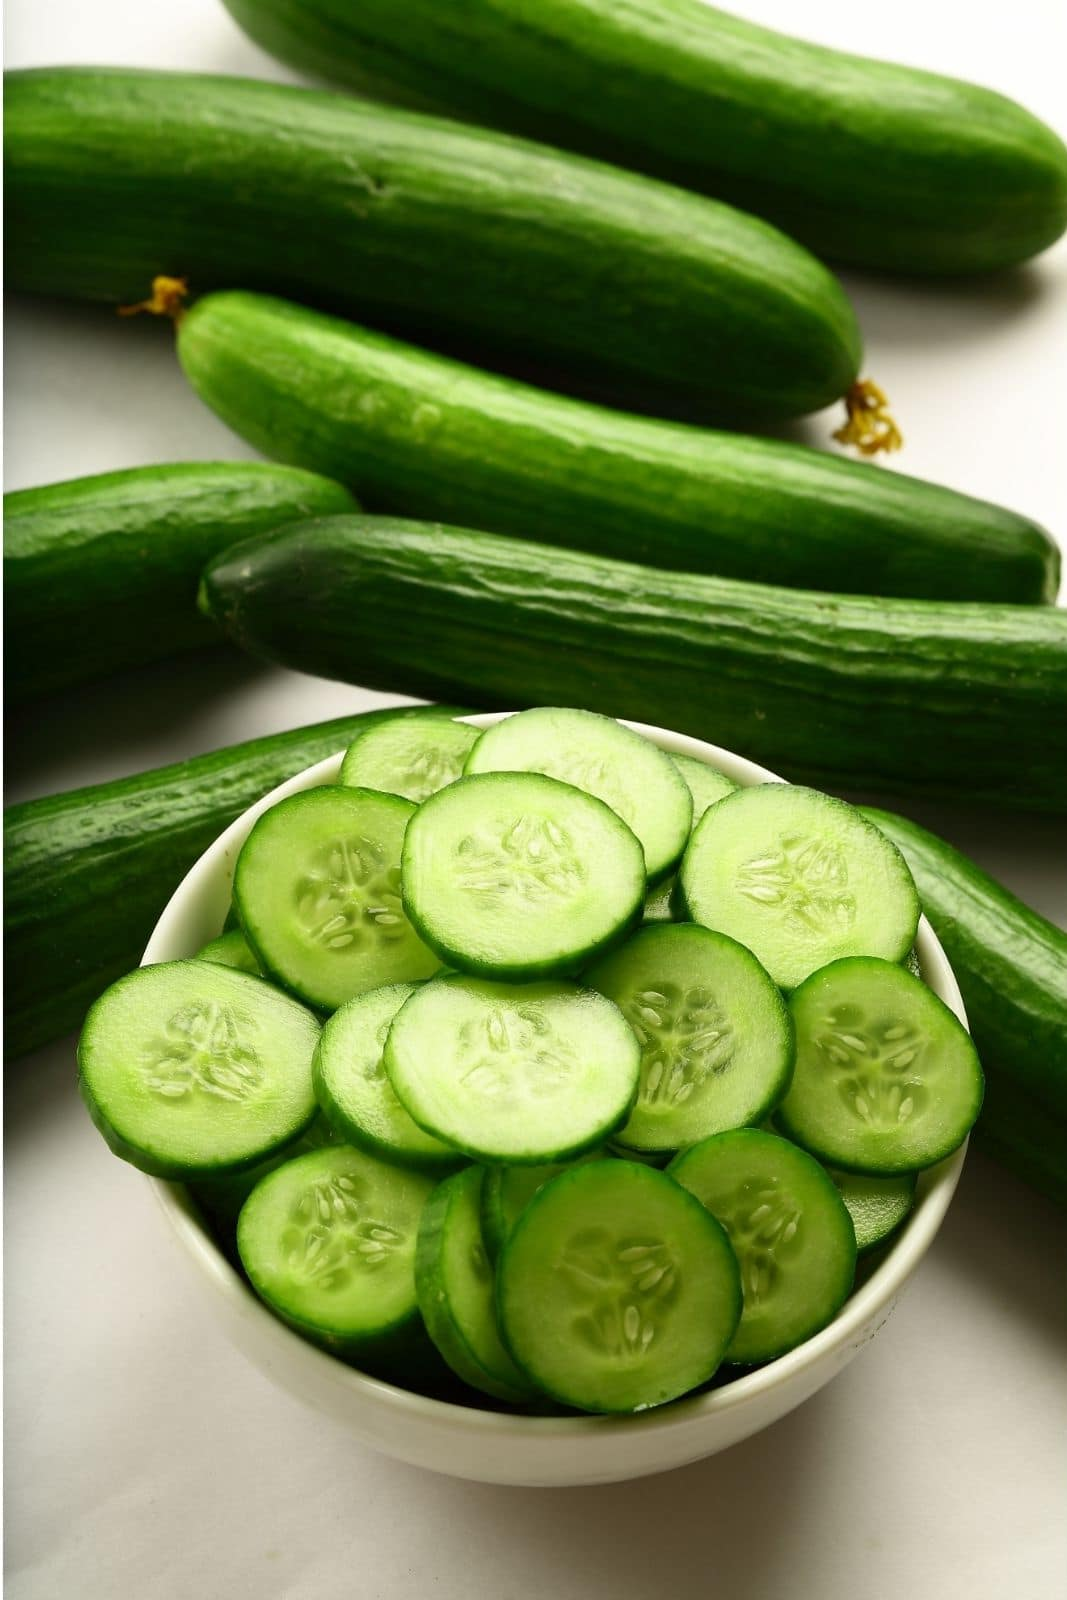 sliced cucumbers in a bowl with whole cucumbers